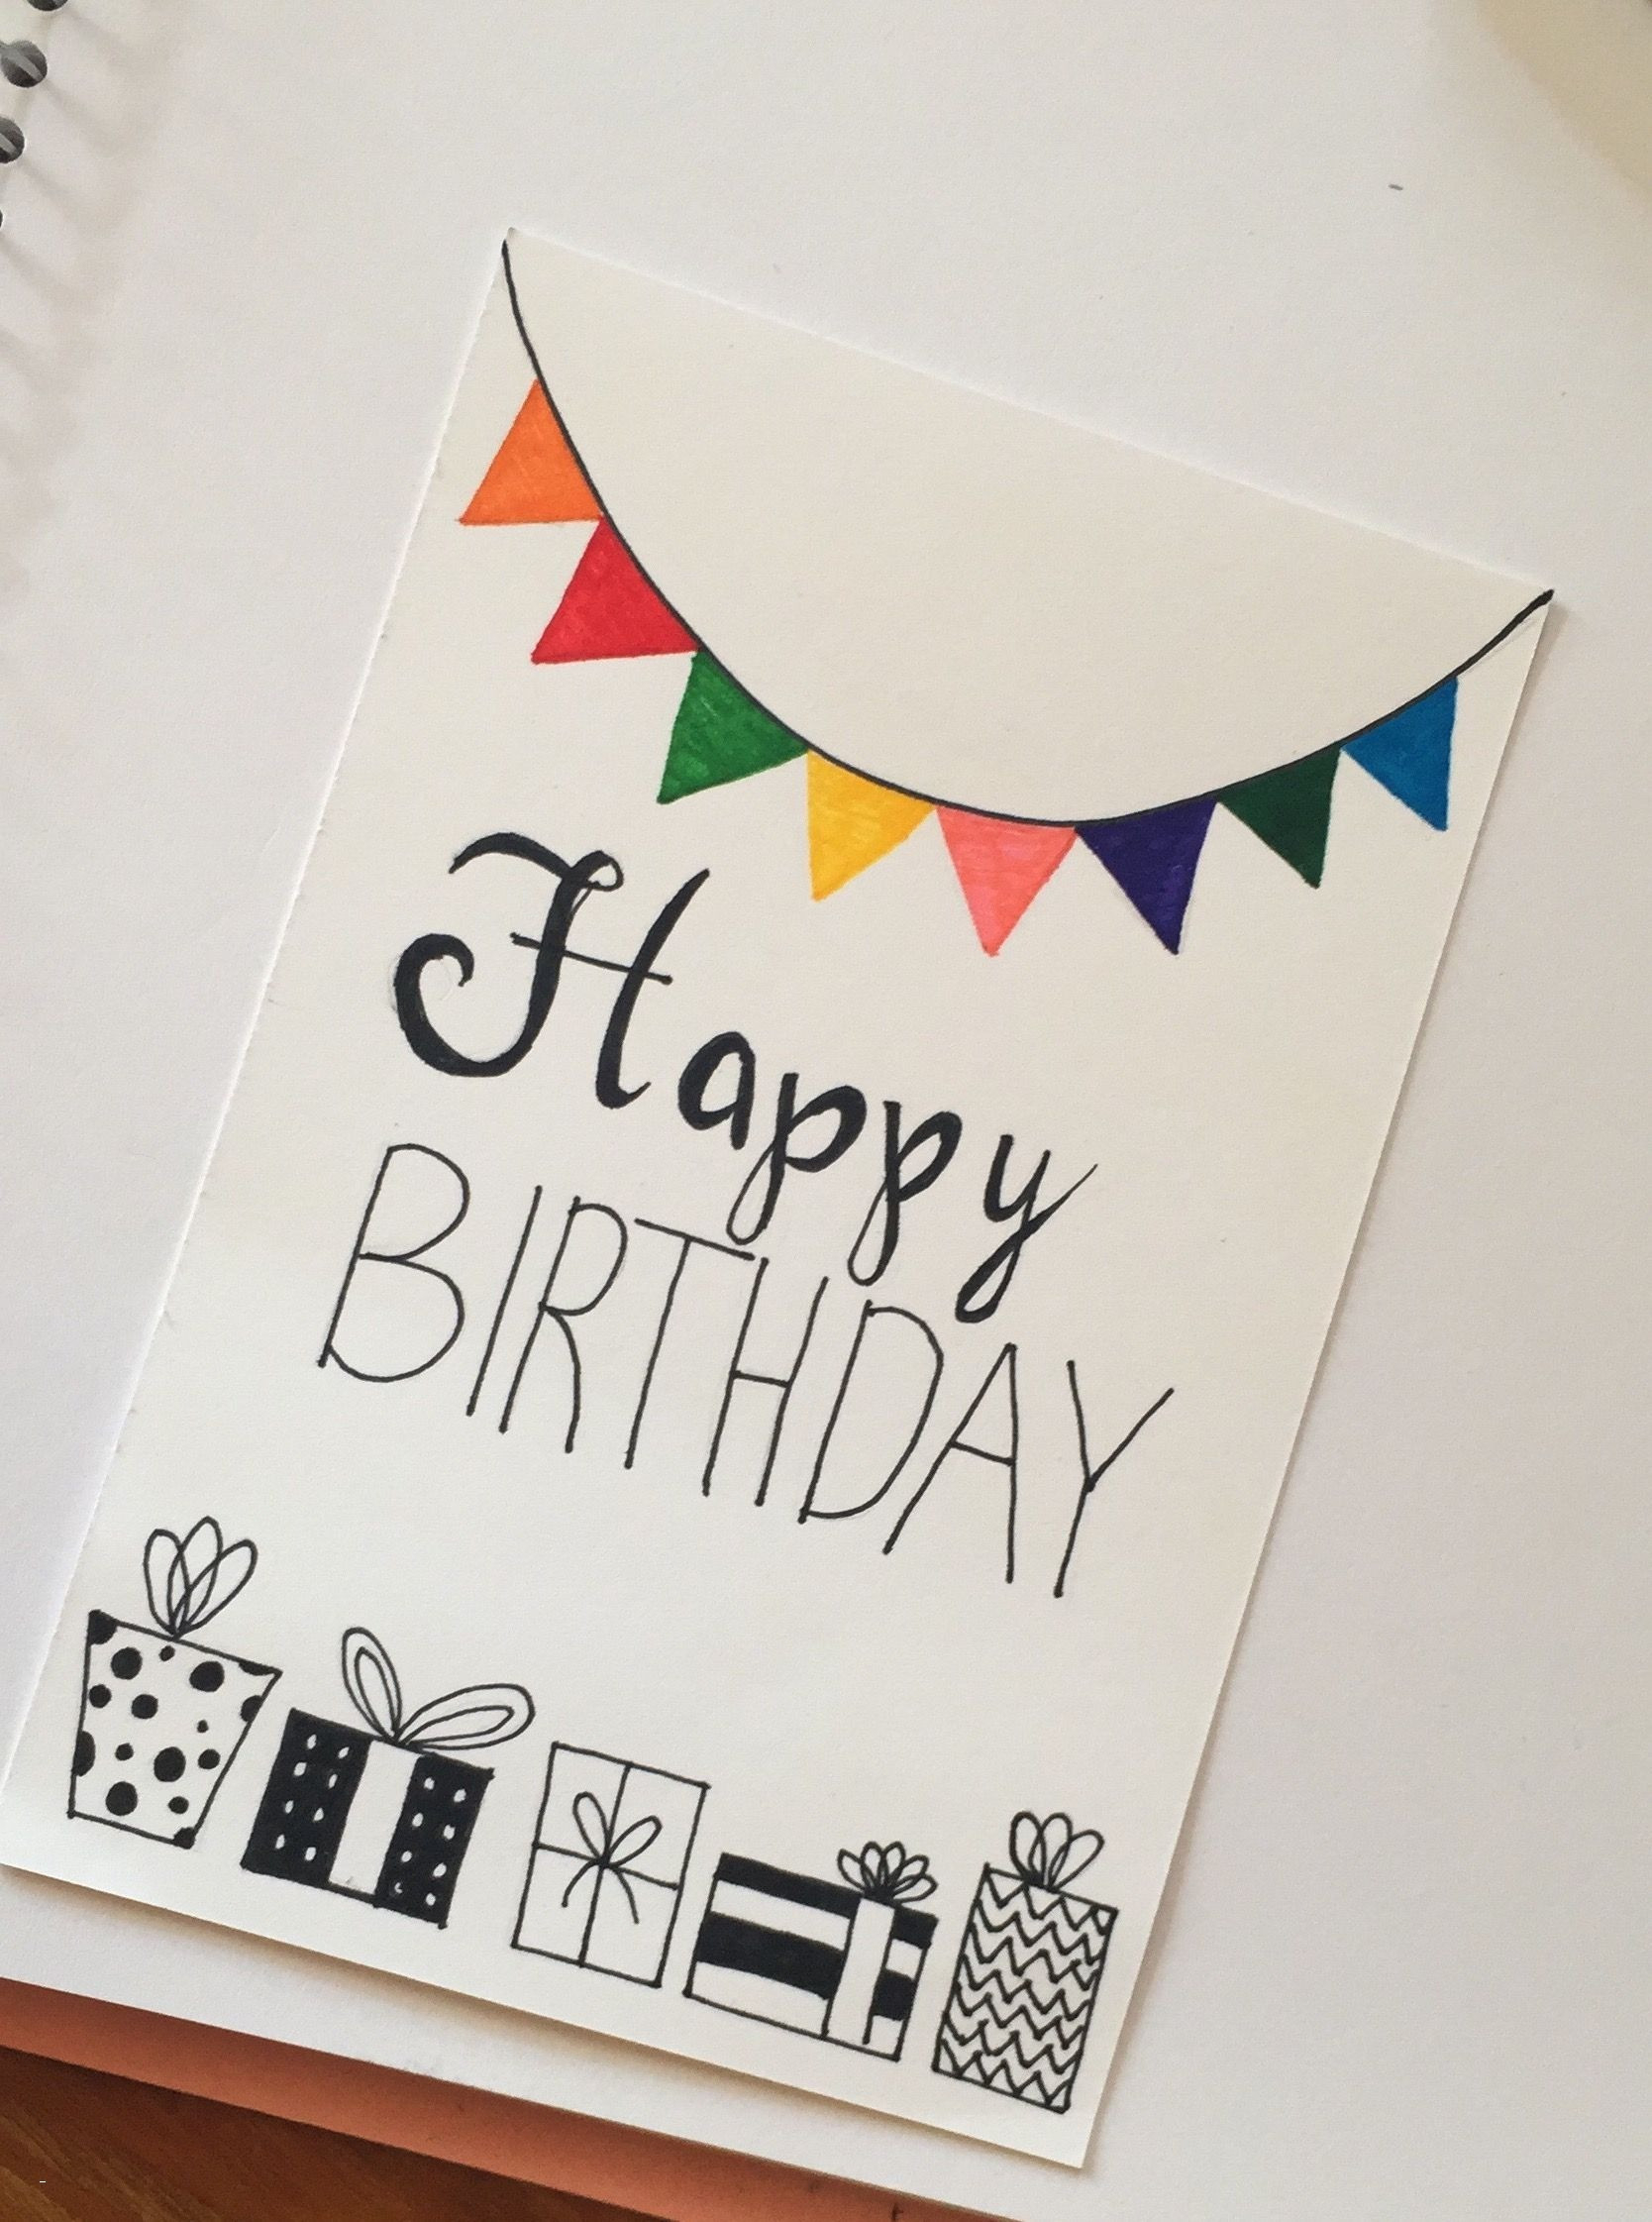 Dad Birthday Card Ideas Easy Dad Birthday Card Ideas For From Child Wording Text Quotes A S